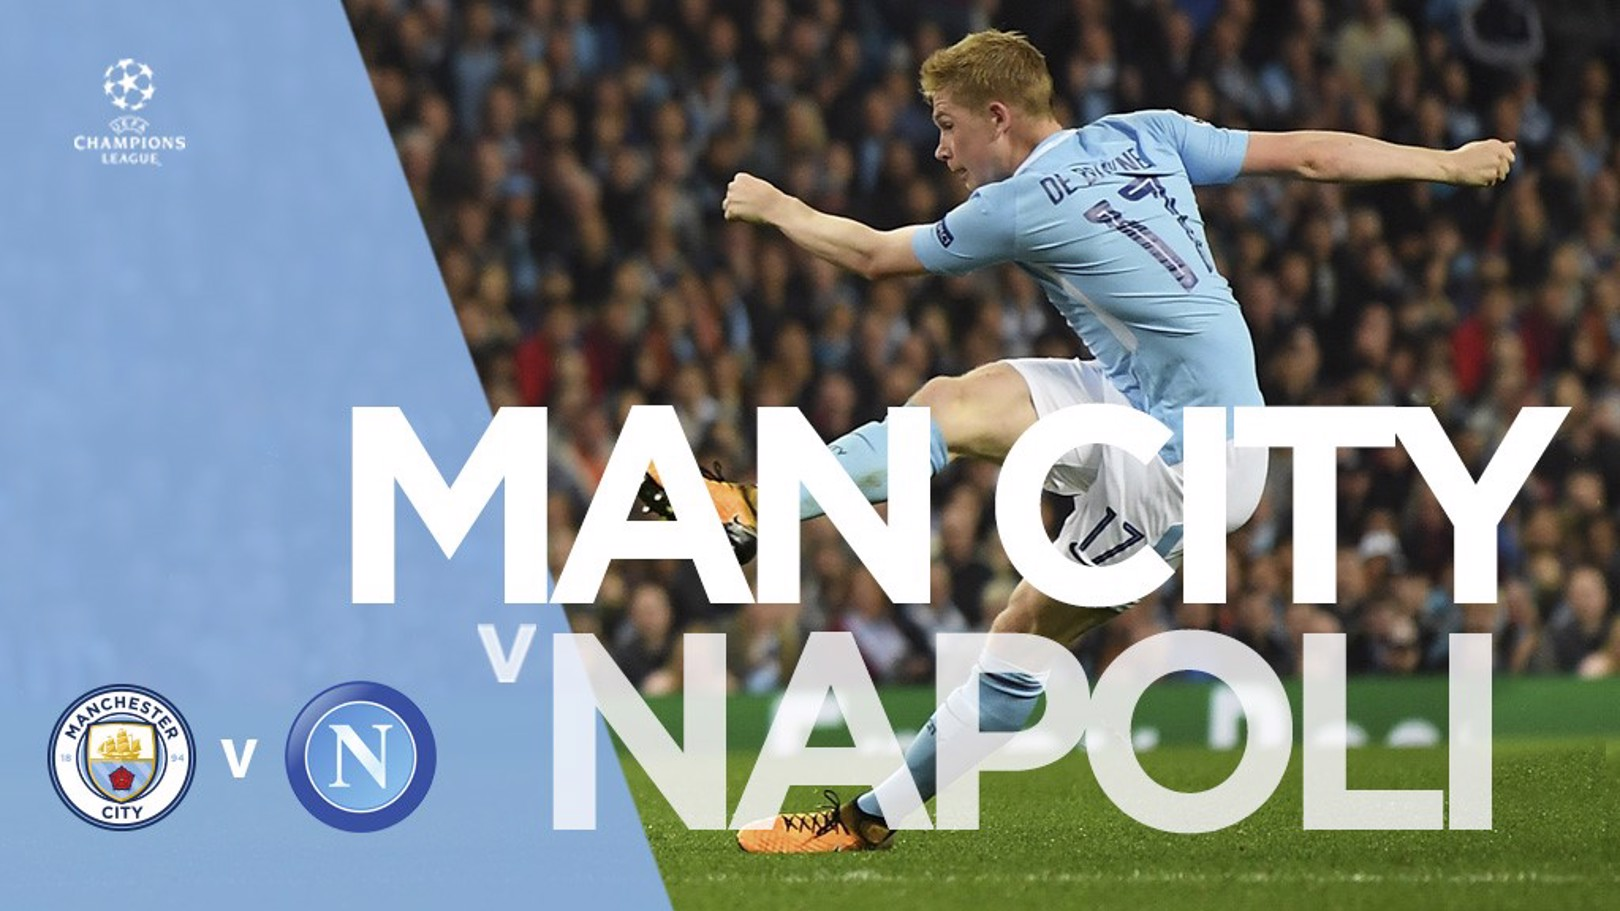 City vs Napoli